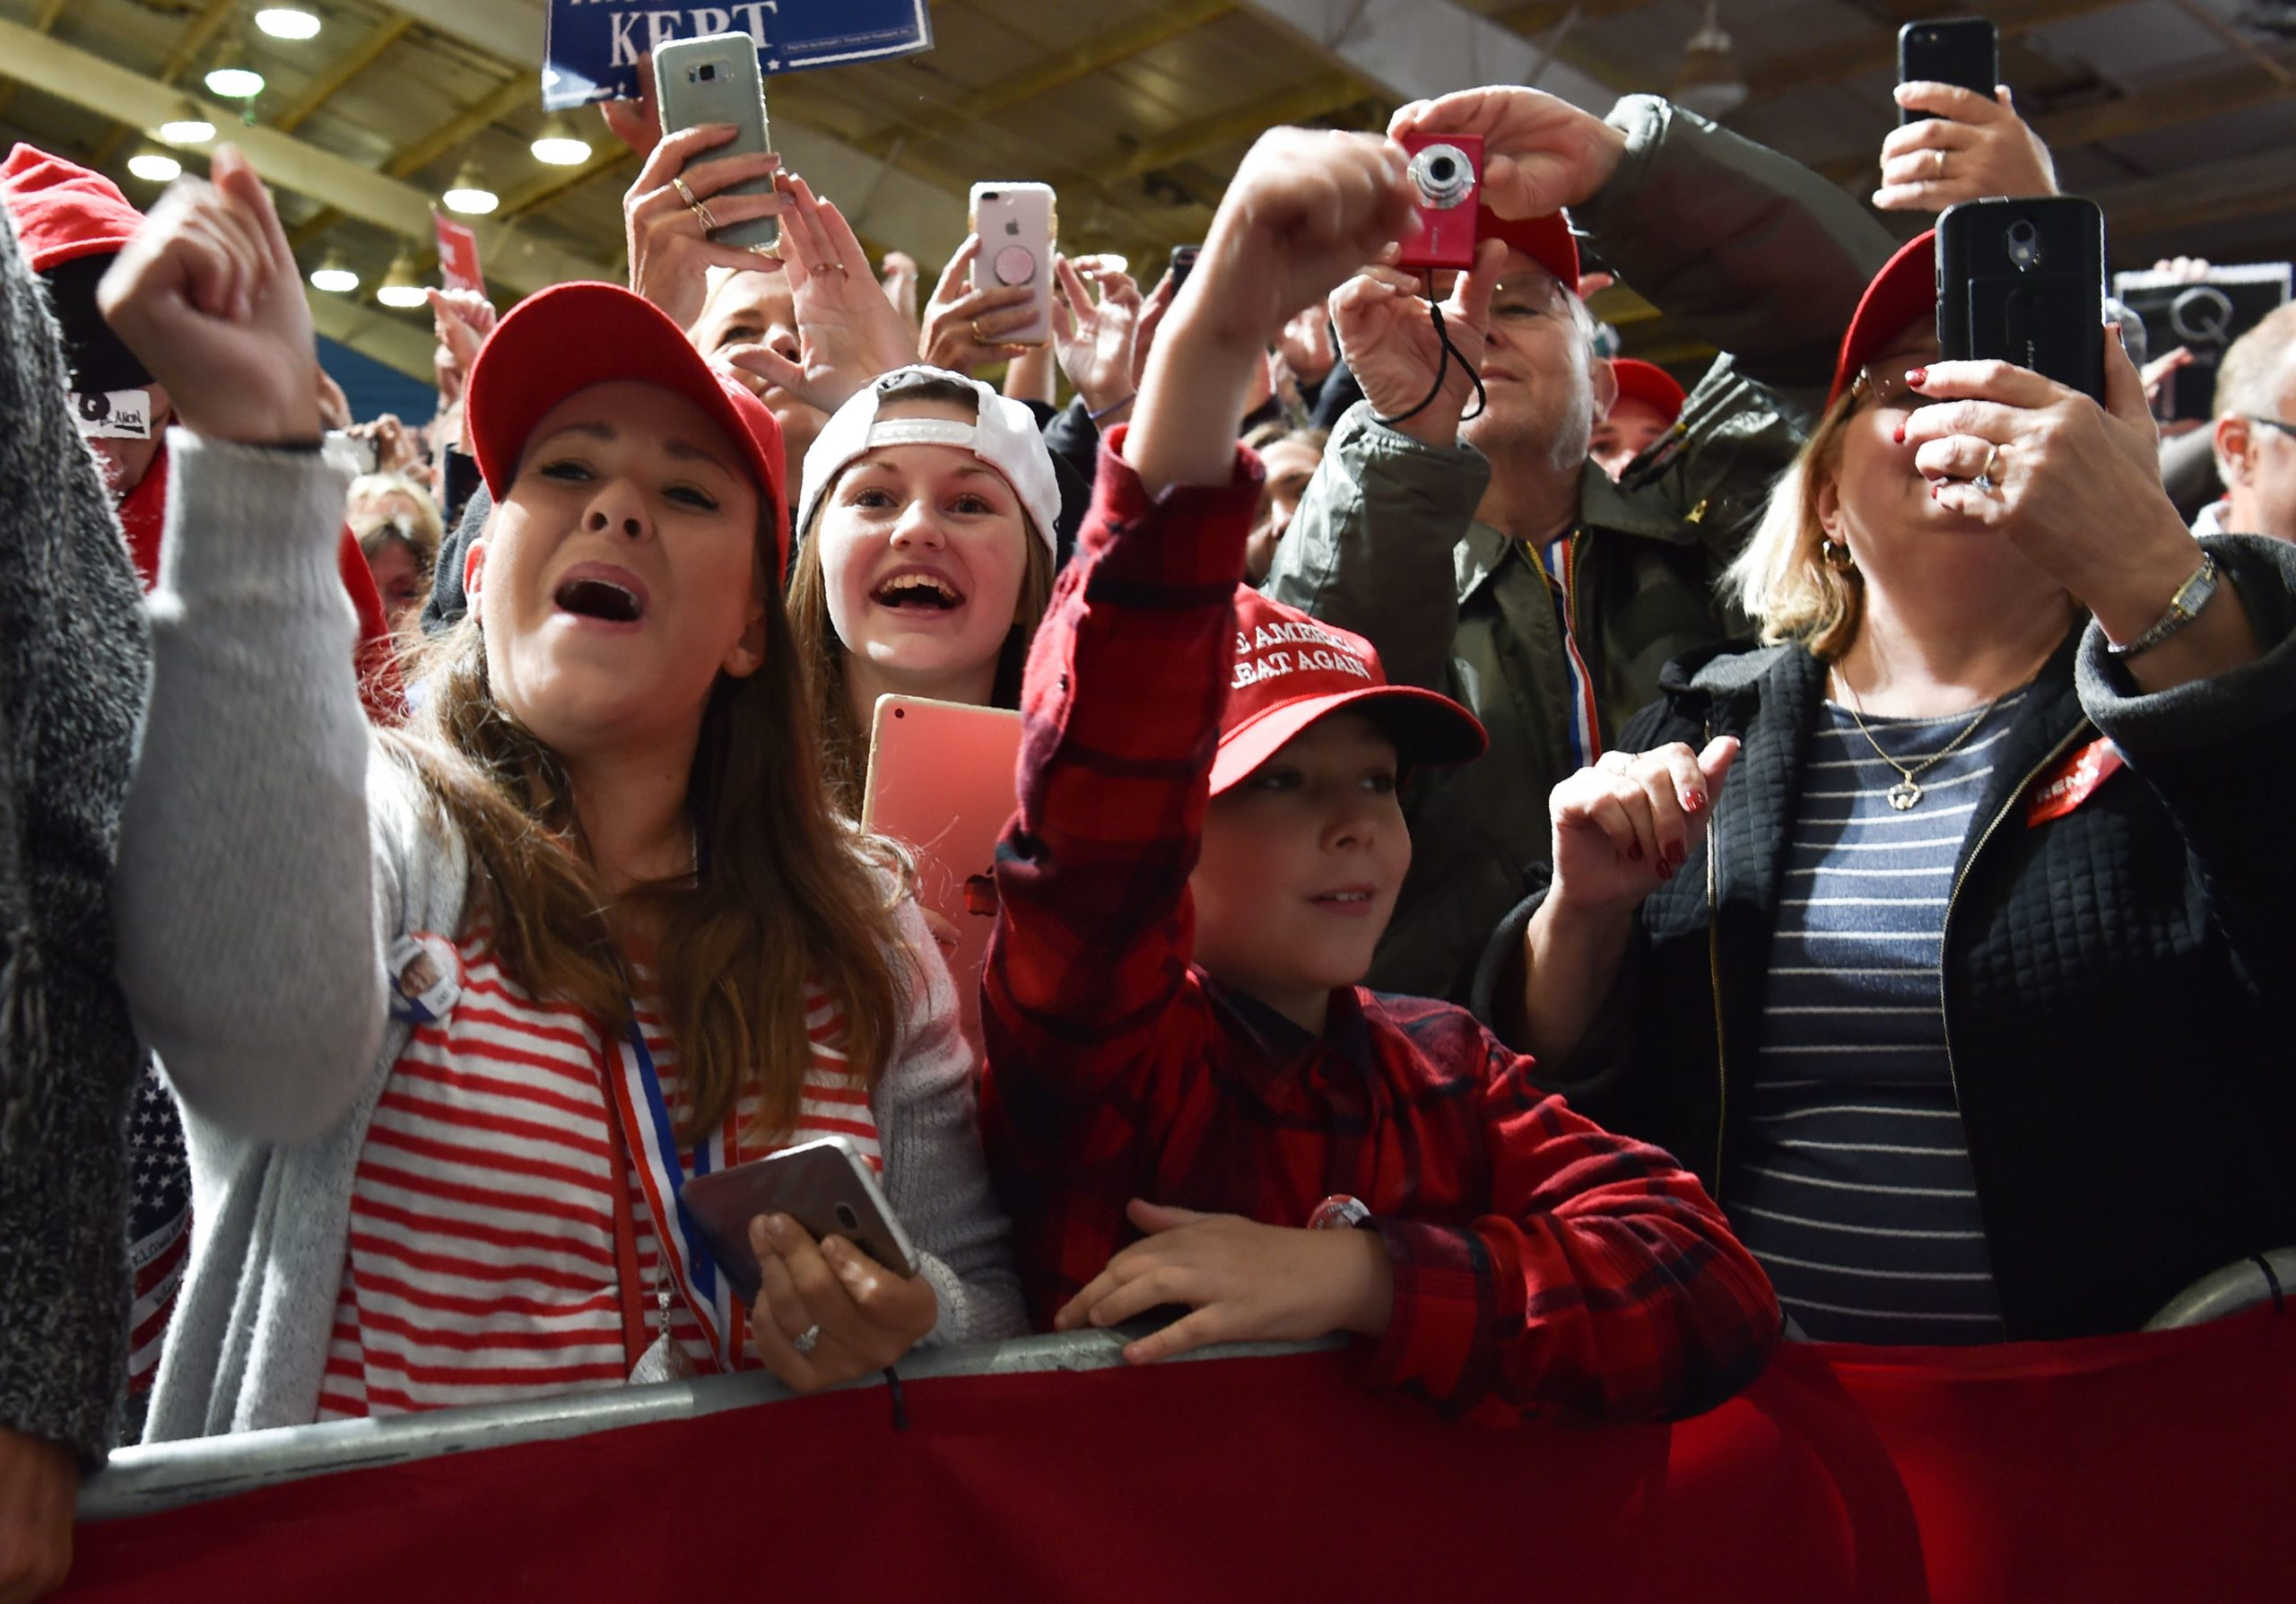 """Supporters of US President Donald Trump (off frame) cheer and clap during his speech at a """"Make America Great Again"""" rally in Lebanon, Ohio, on October 12, 2018. (Photo by Nicholas Kamm / AFP) (Photo credit NICHOLAS KAMM/AFP via Getty Images)"""